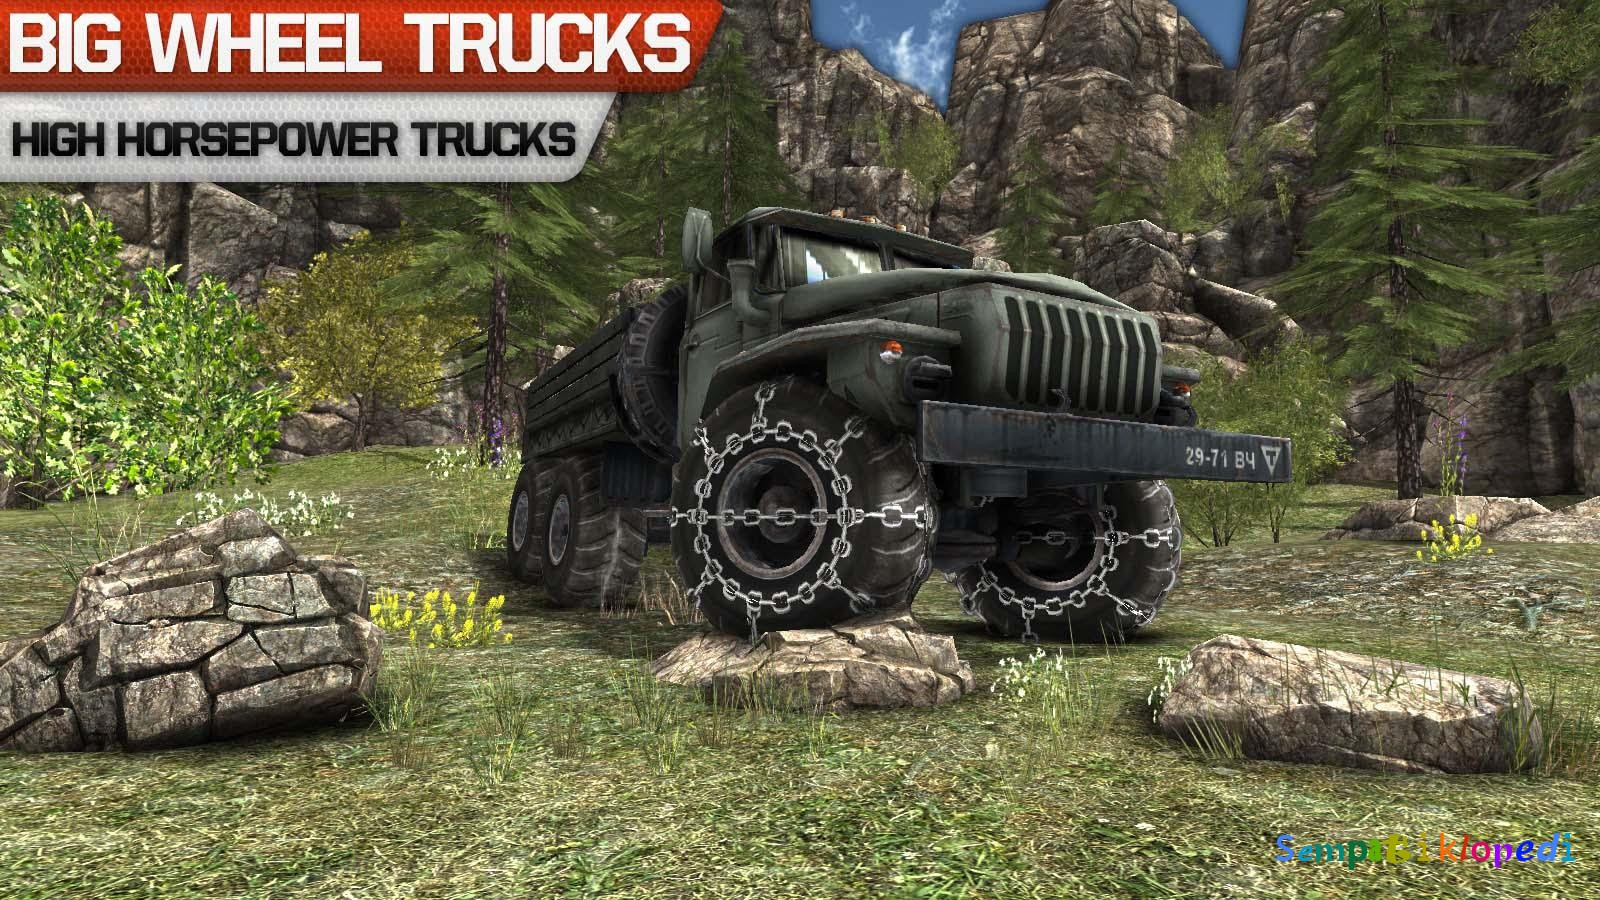 Truck Off Road Games Online